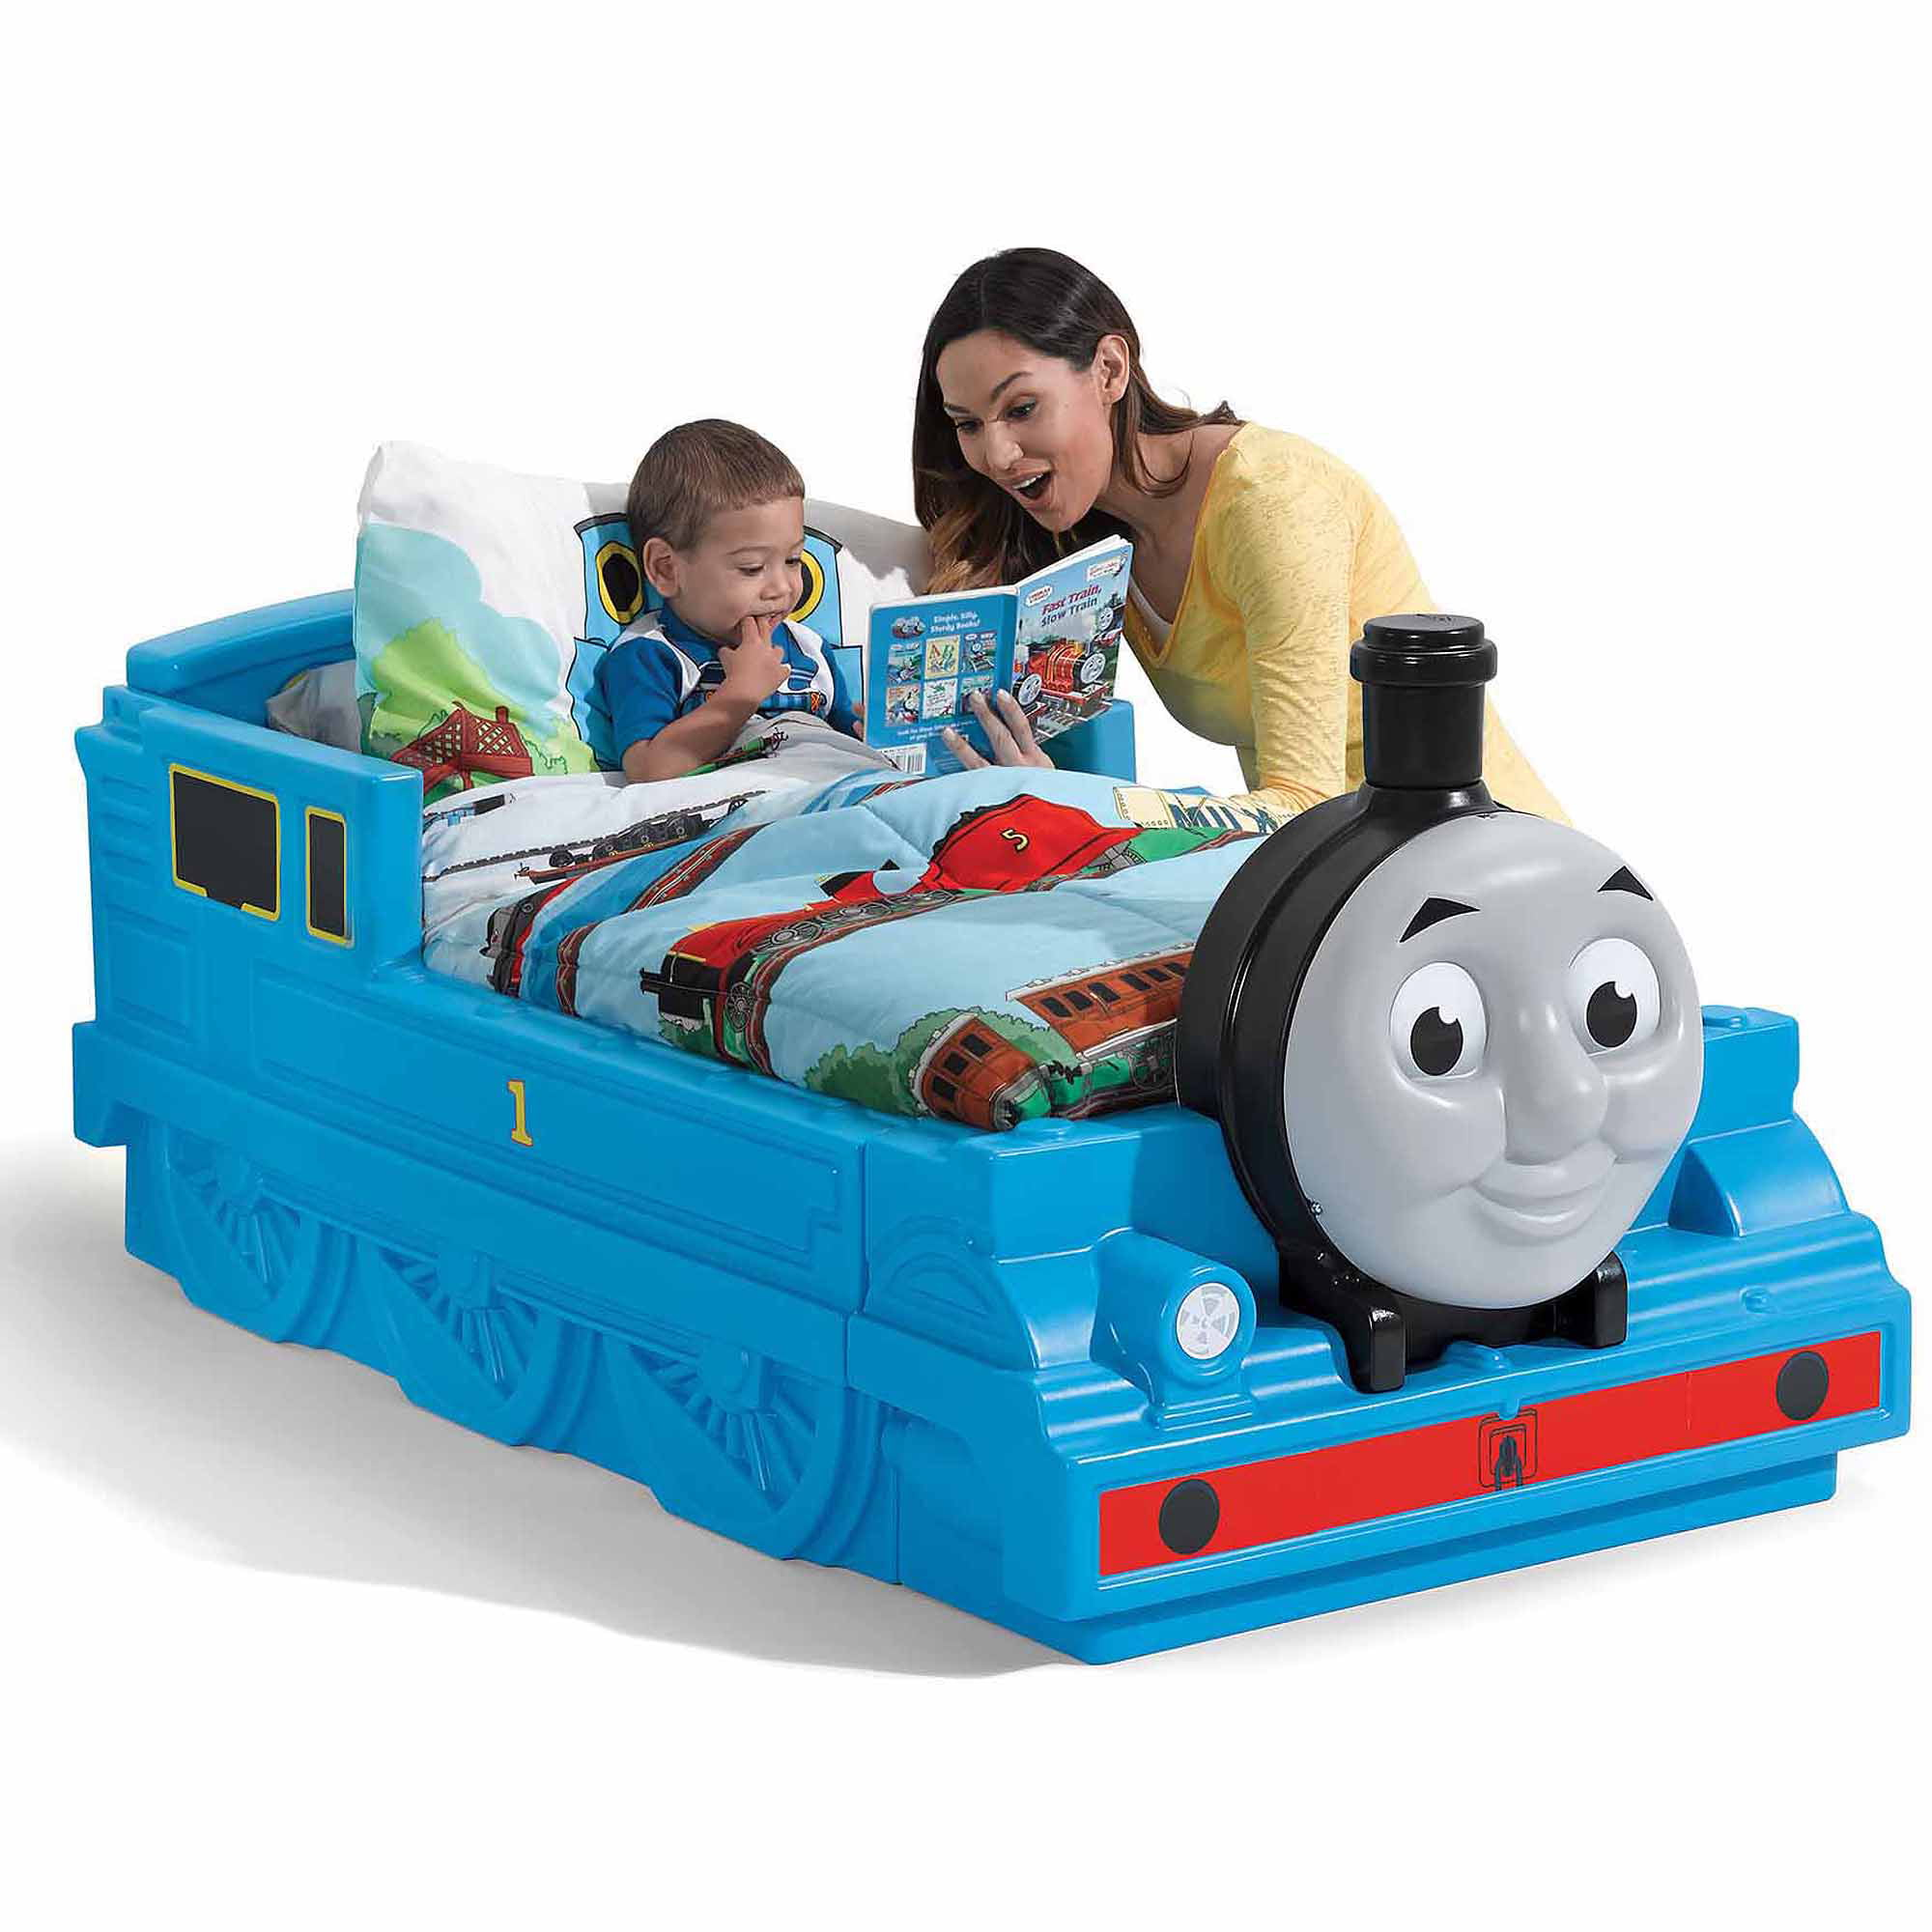 Thomas The Tank Engine Toddler Bed With Storage   Walmart.com